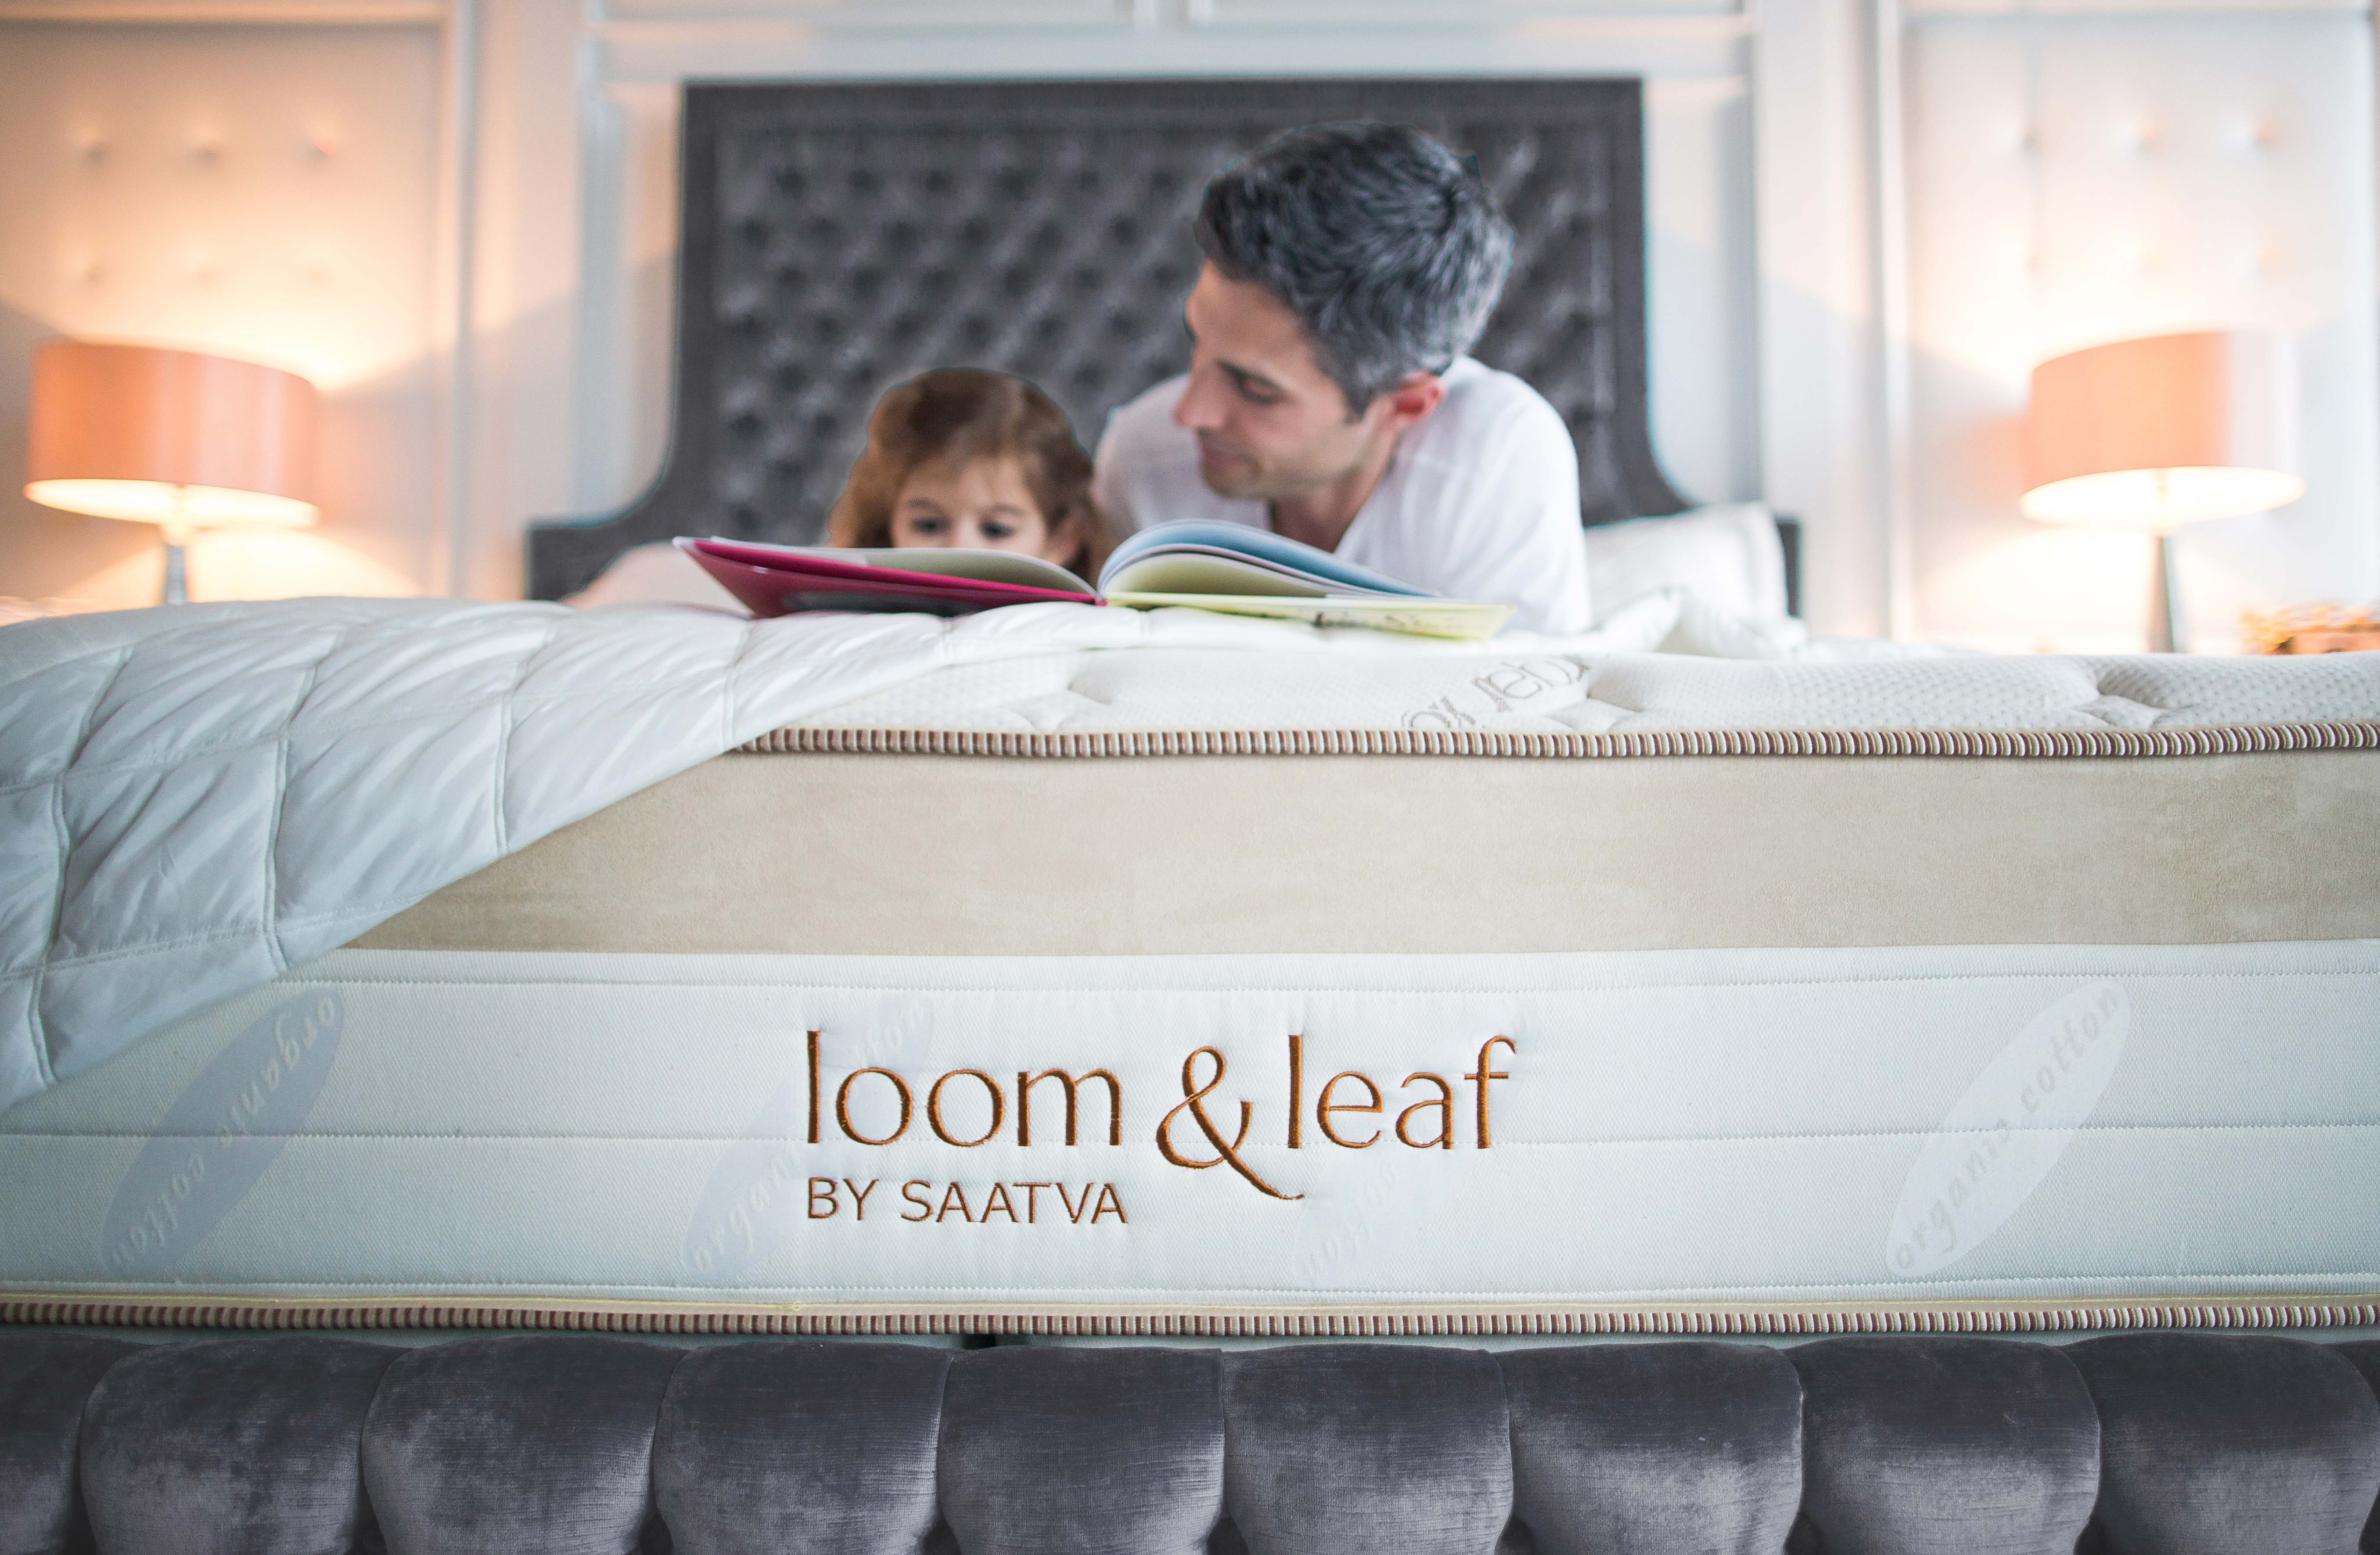 the loom and leaf is a premium memory 12u2033 memory foam mattress that is made up of multiple layers of high quality foam with medical grade cooling gel